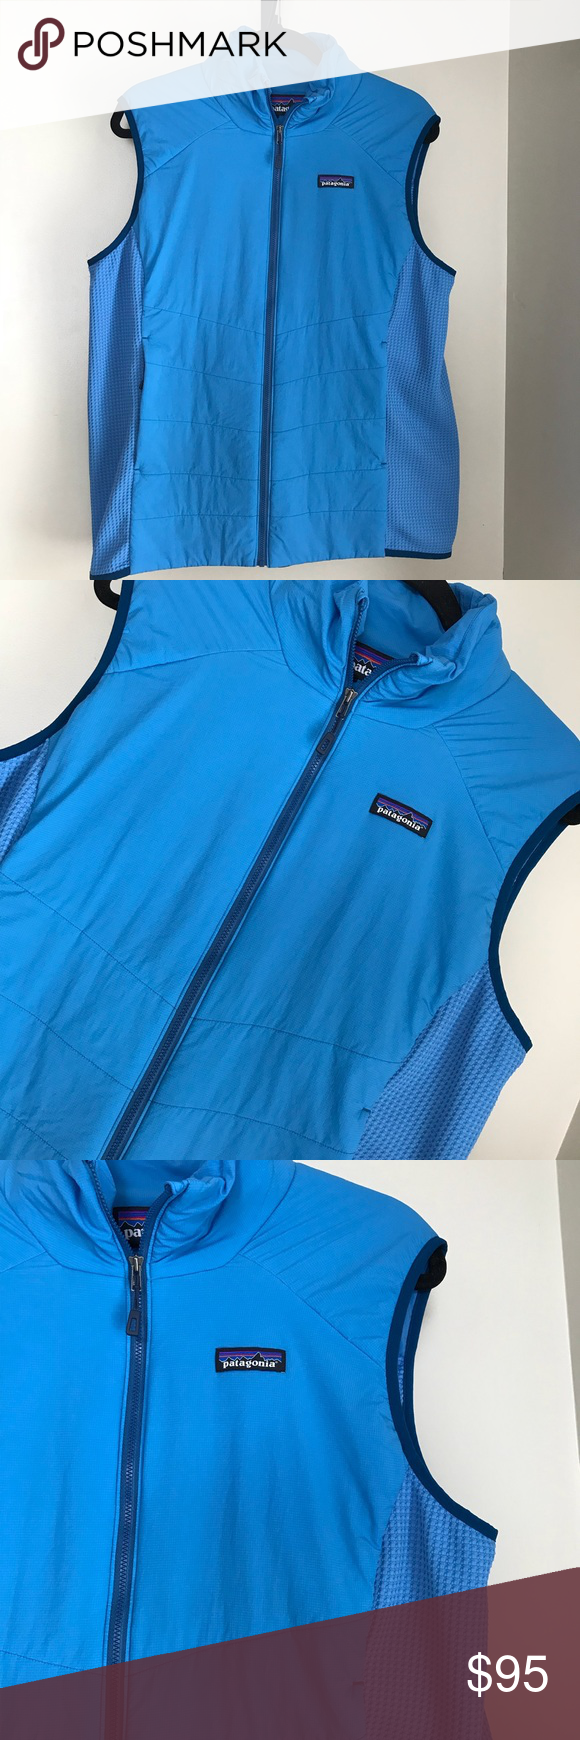 Patagonia Nano Air light hybrid vest Excellent like new